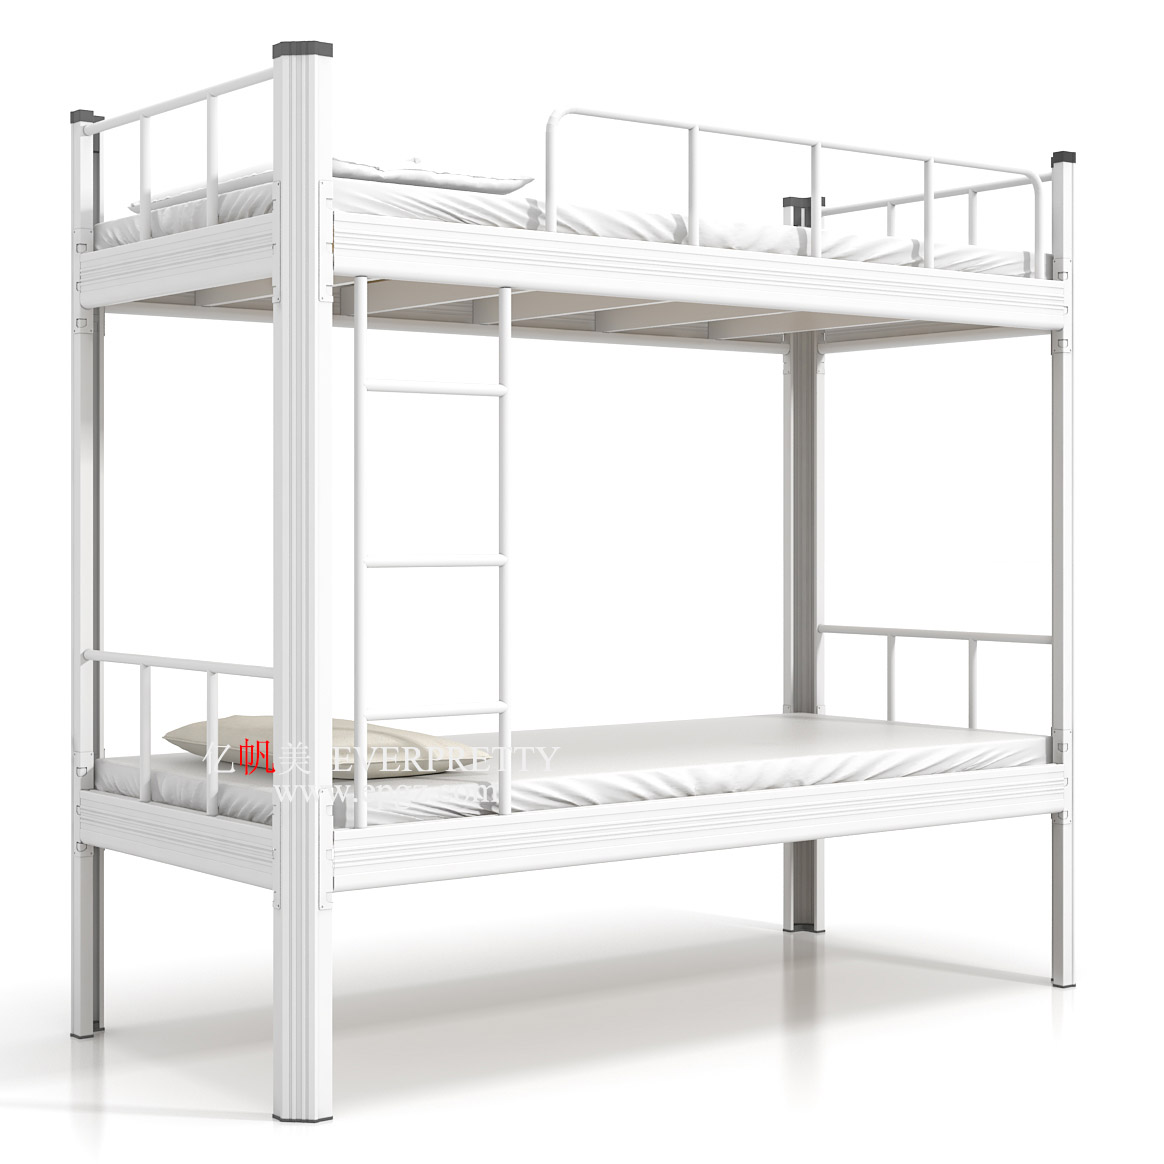 Picture of: Comfortable Marine Commercial Metal Bunk Beds Buy Metal Bunk Beds Commercial Bunk Beds Marine Bunk Bed Product On Alibaba Com